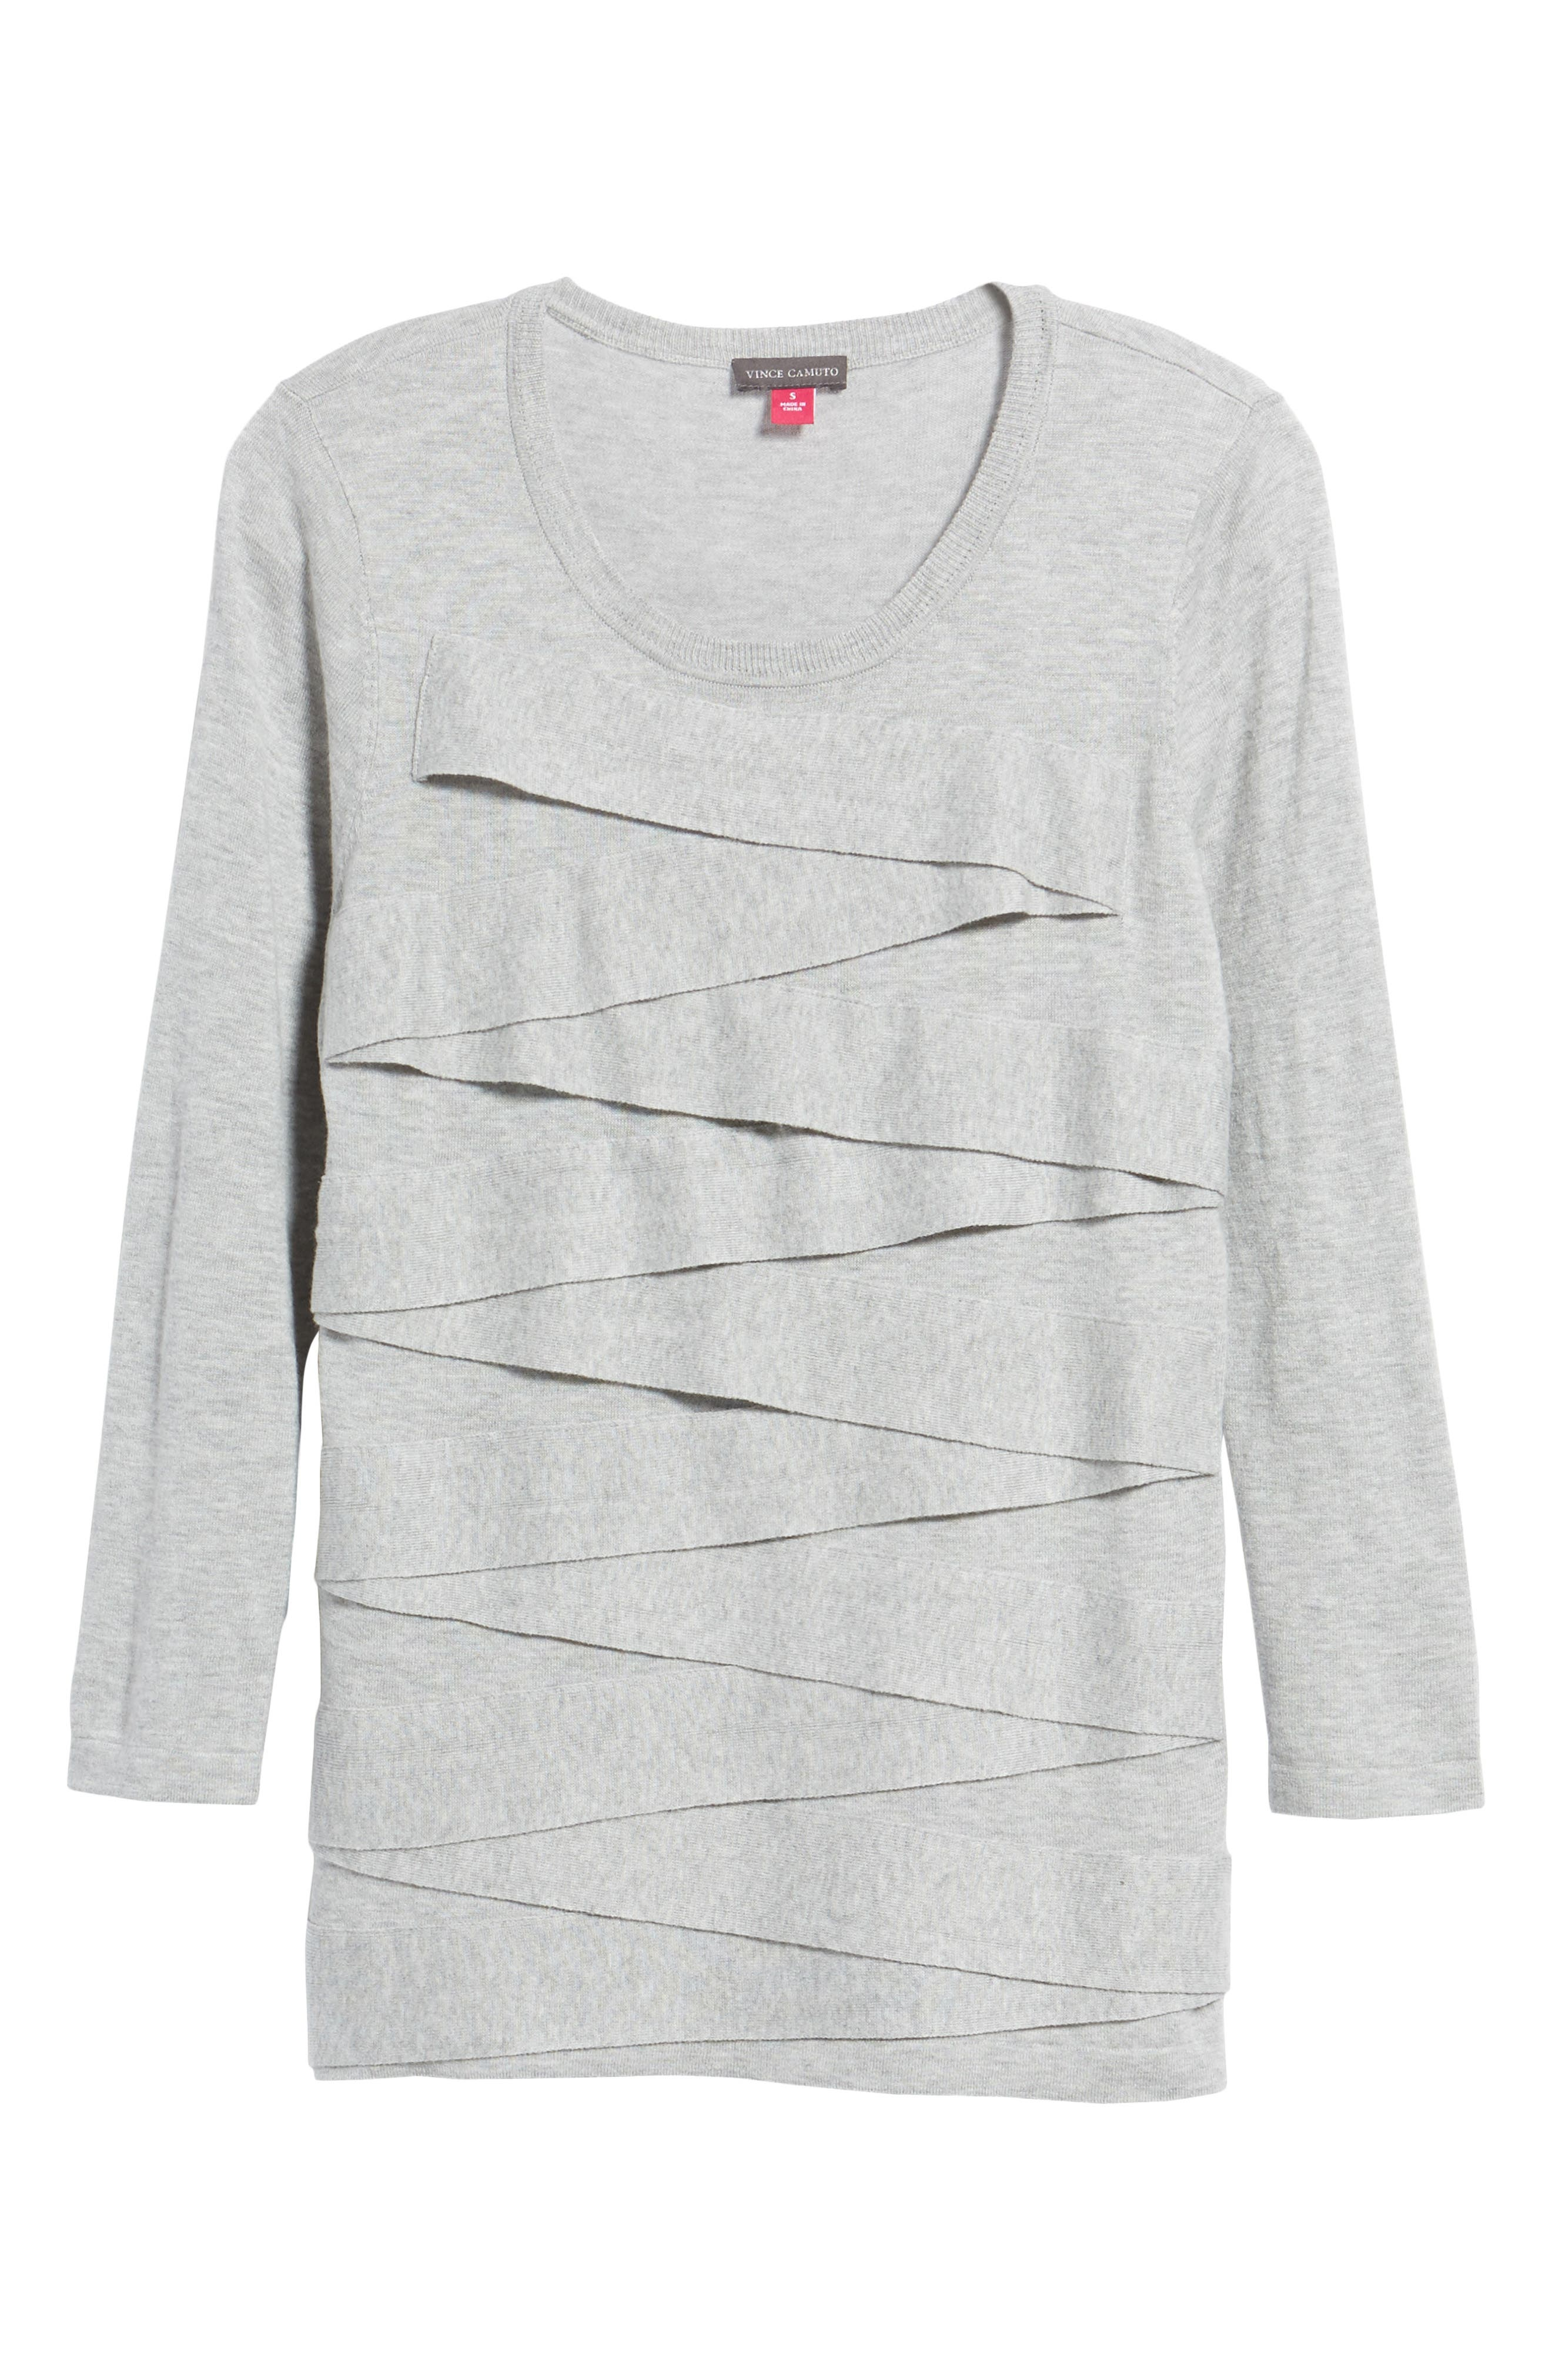 Zigzag Sweater,                             Alternate thumbnail 6, color,                             Grey Heather